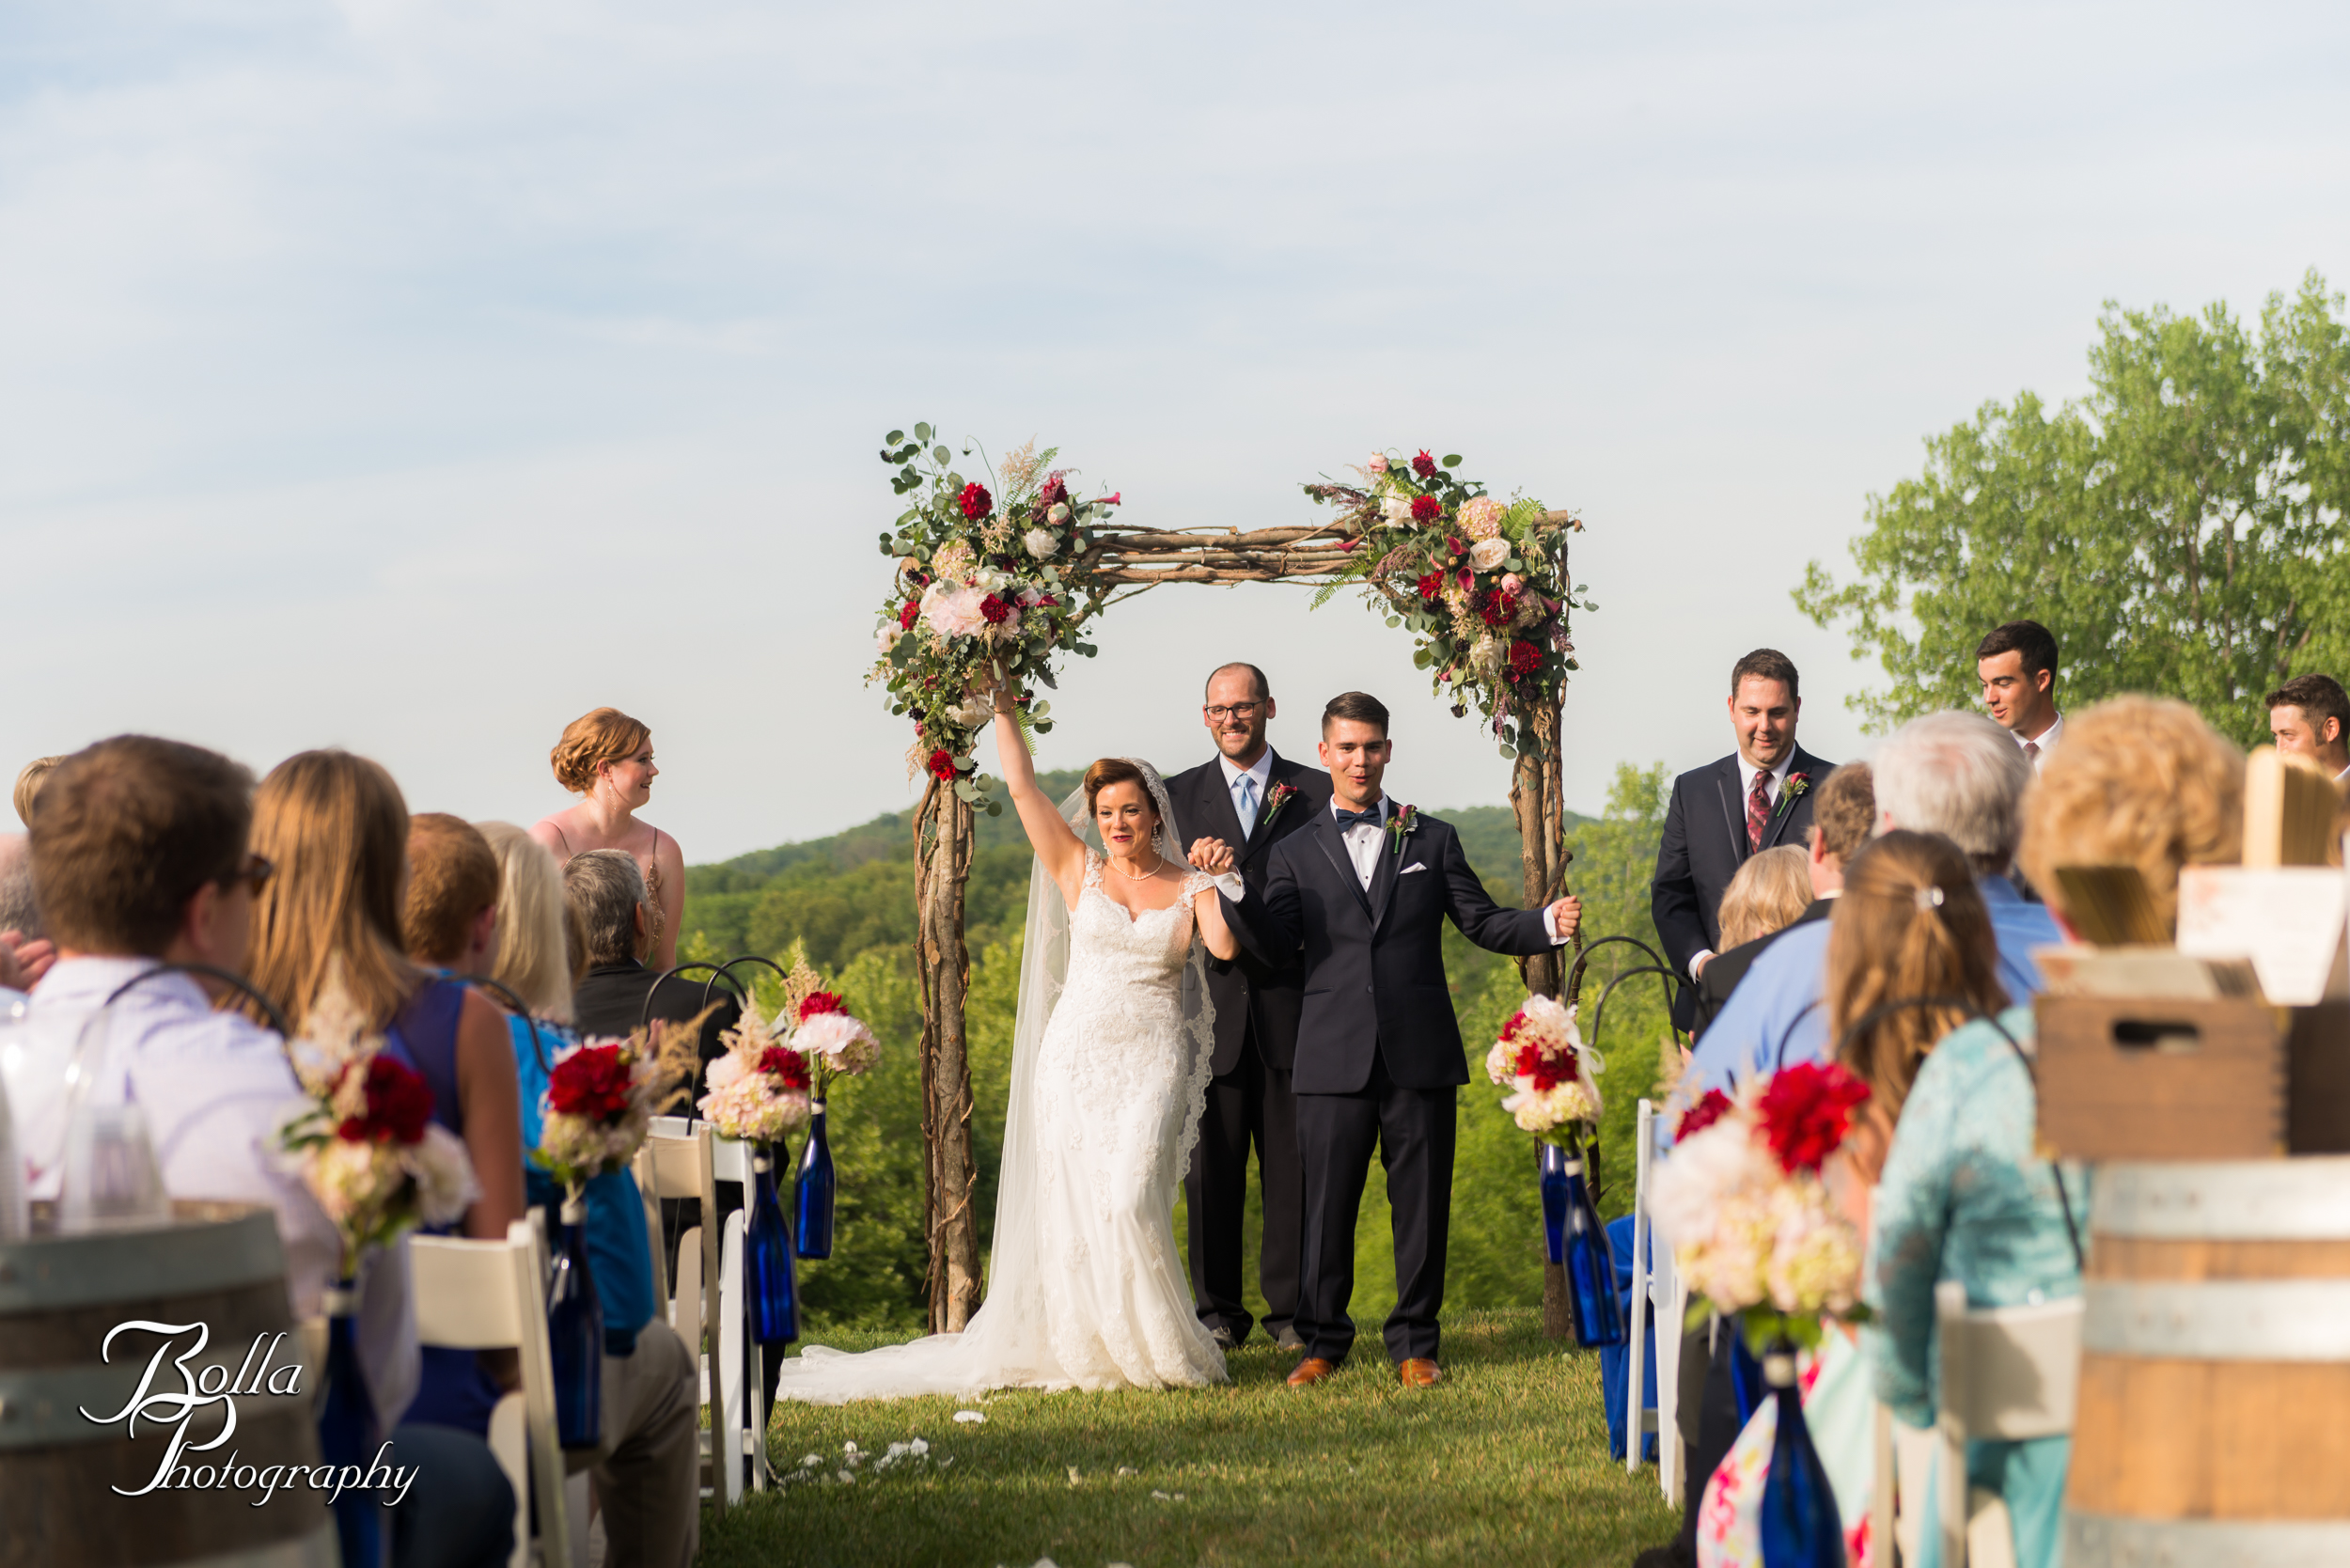 Bolla_photography_edwardsville_wedding_photographer_st_louis_weddings_Chaumette_winery_Mikusch-0420.jpg